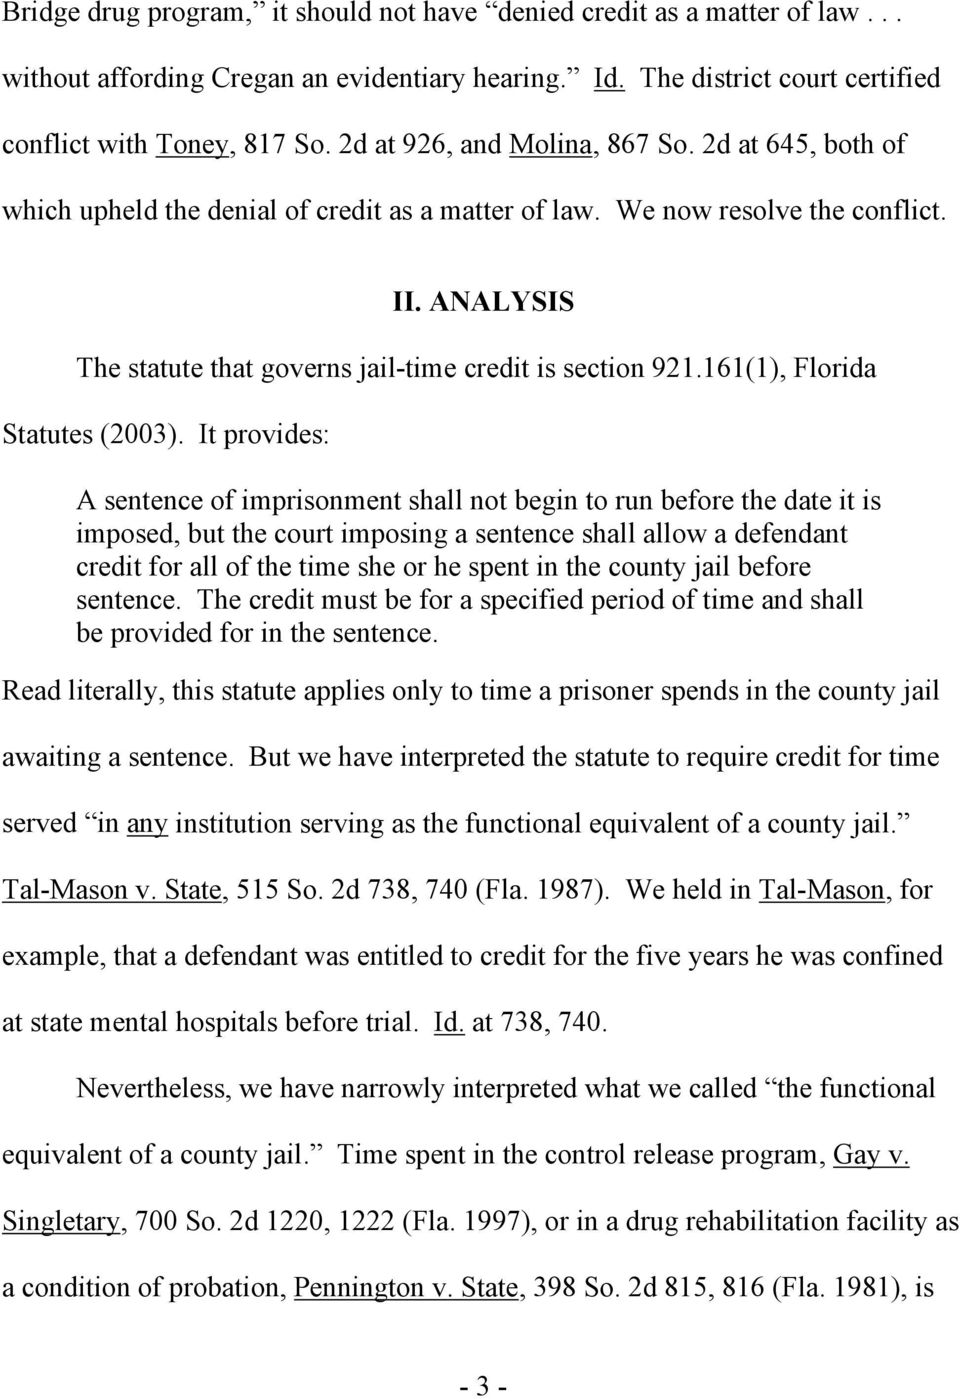 ANALYSIS The statute that governs jail-time credit is section 921.161(1), Florida Statutes (2003).